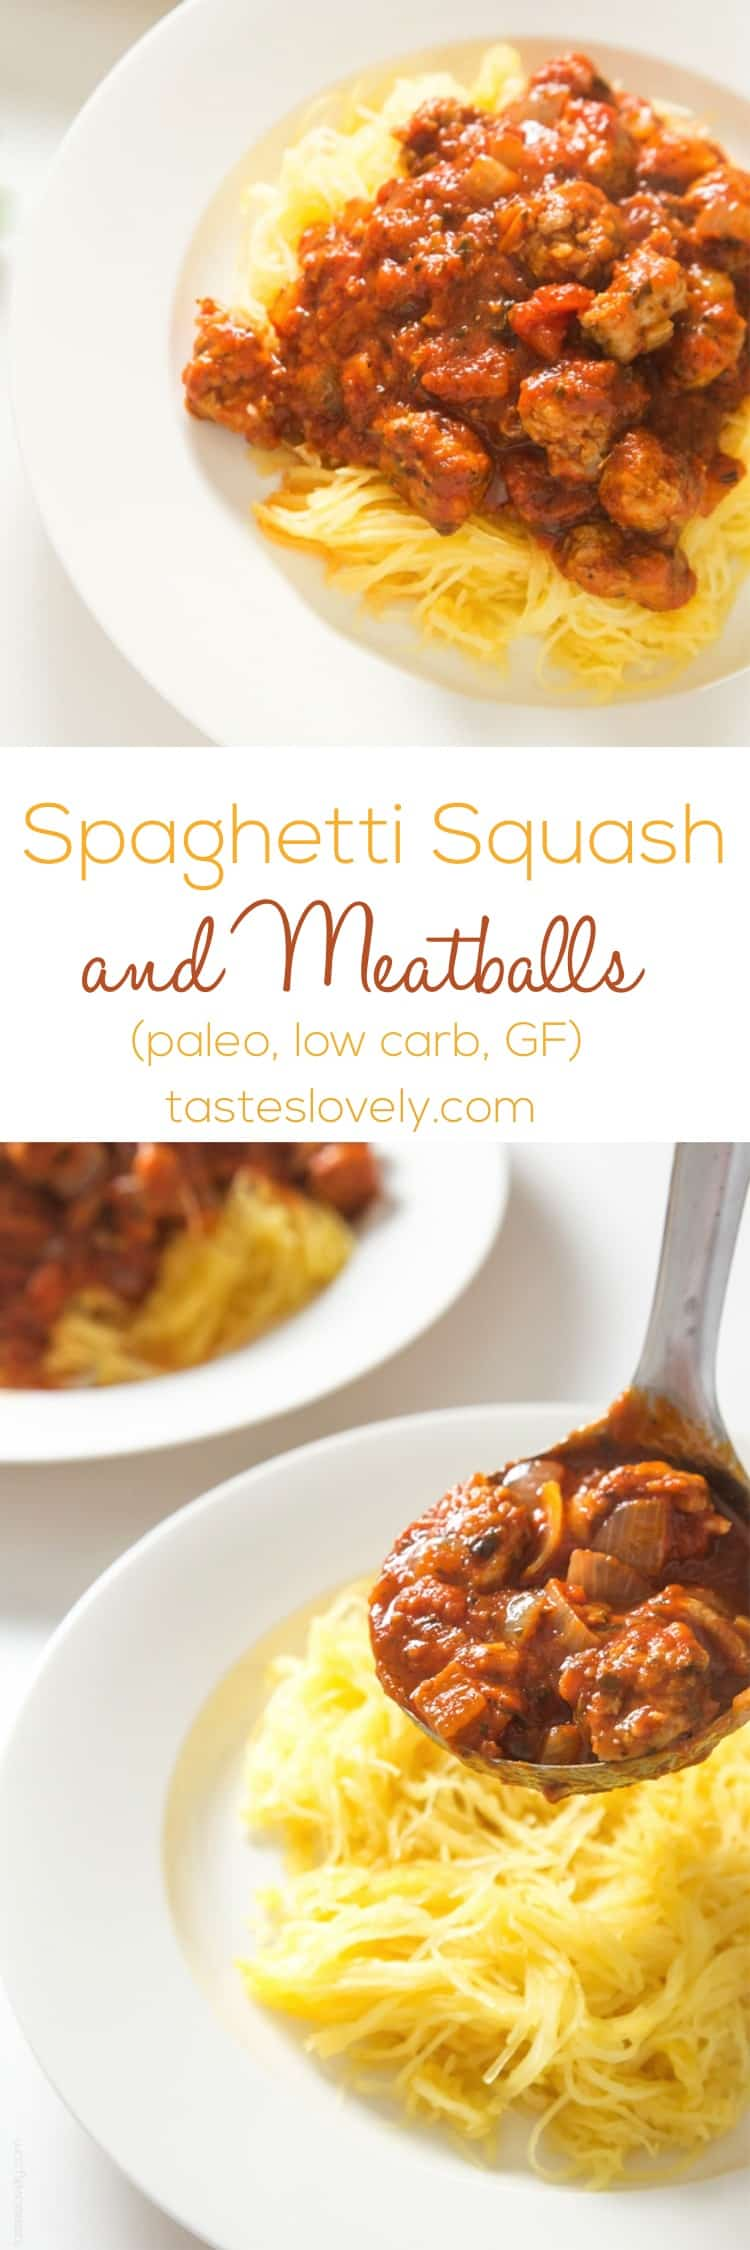 Spaghetti Squash & Meatballs - healthy spaghetti made w- spaghetti squash noodles & Italian sausage meatballs that tastes great! #glutenfree #paleo #whole30 #lowcarb #dairyfree